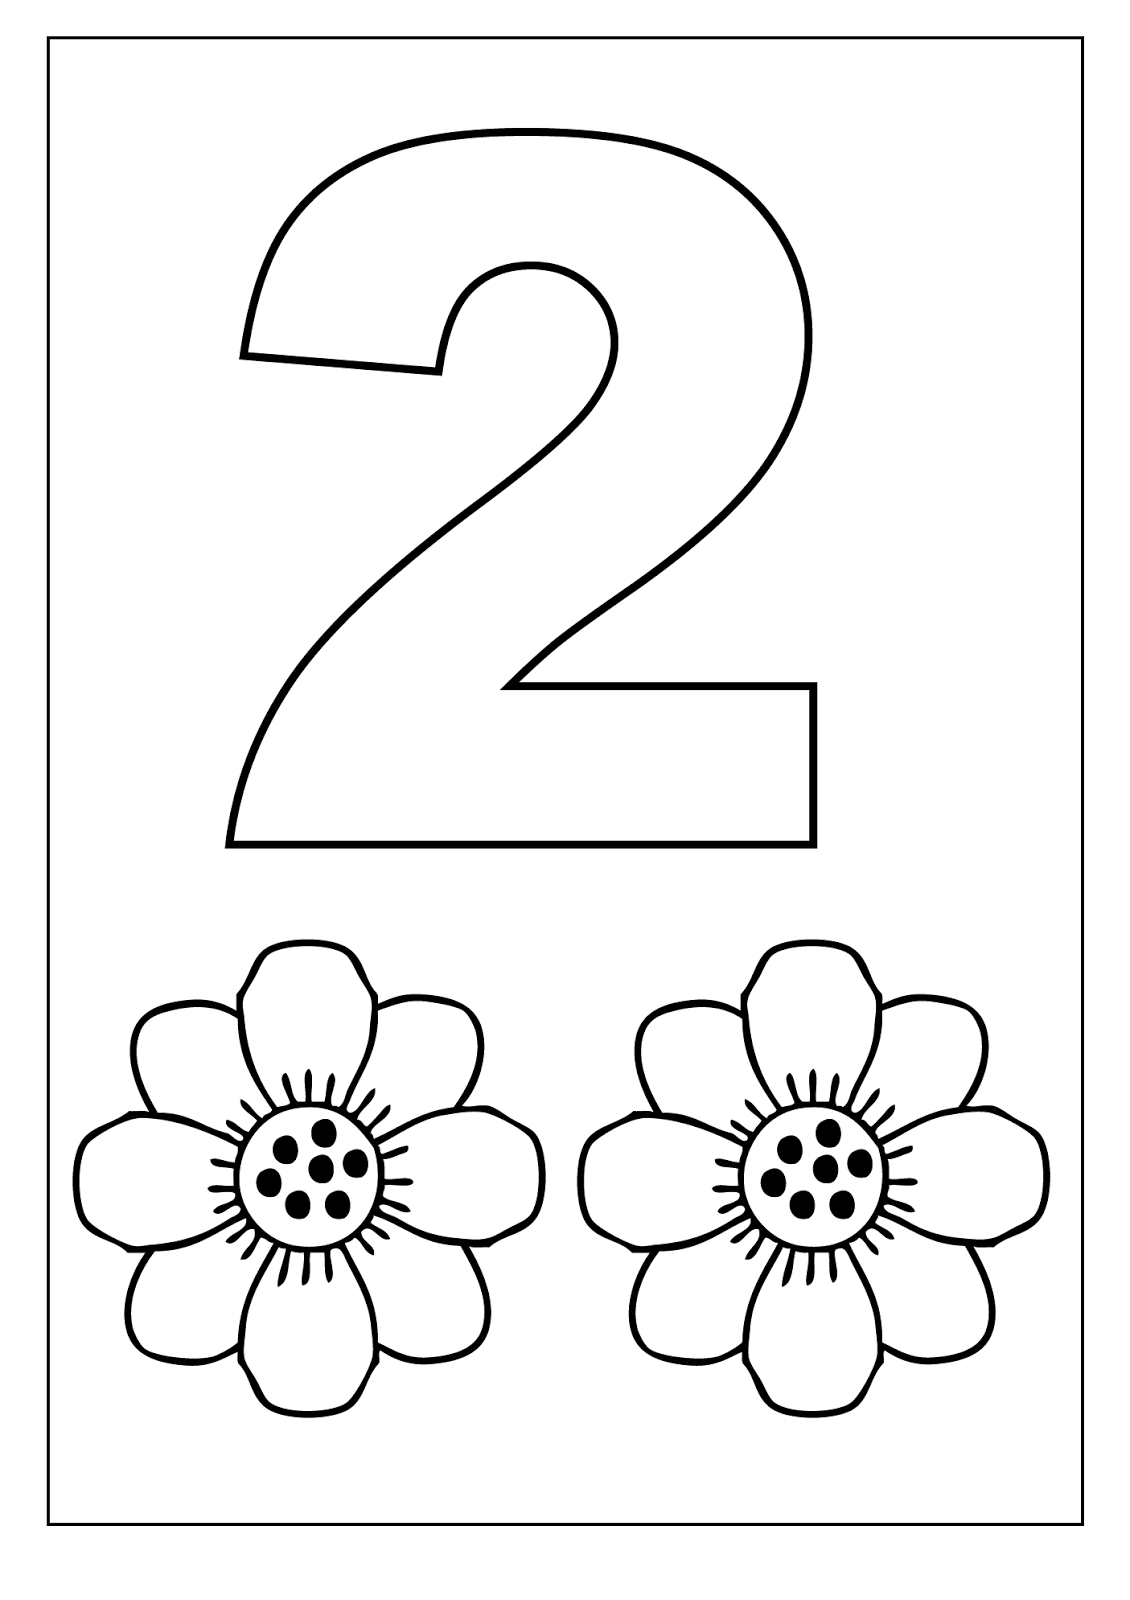 Printables Worksheets For 5 Year Olds printable worksheets for 5 year olds scalien